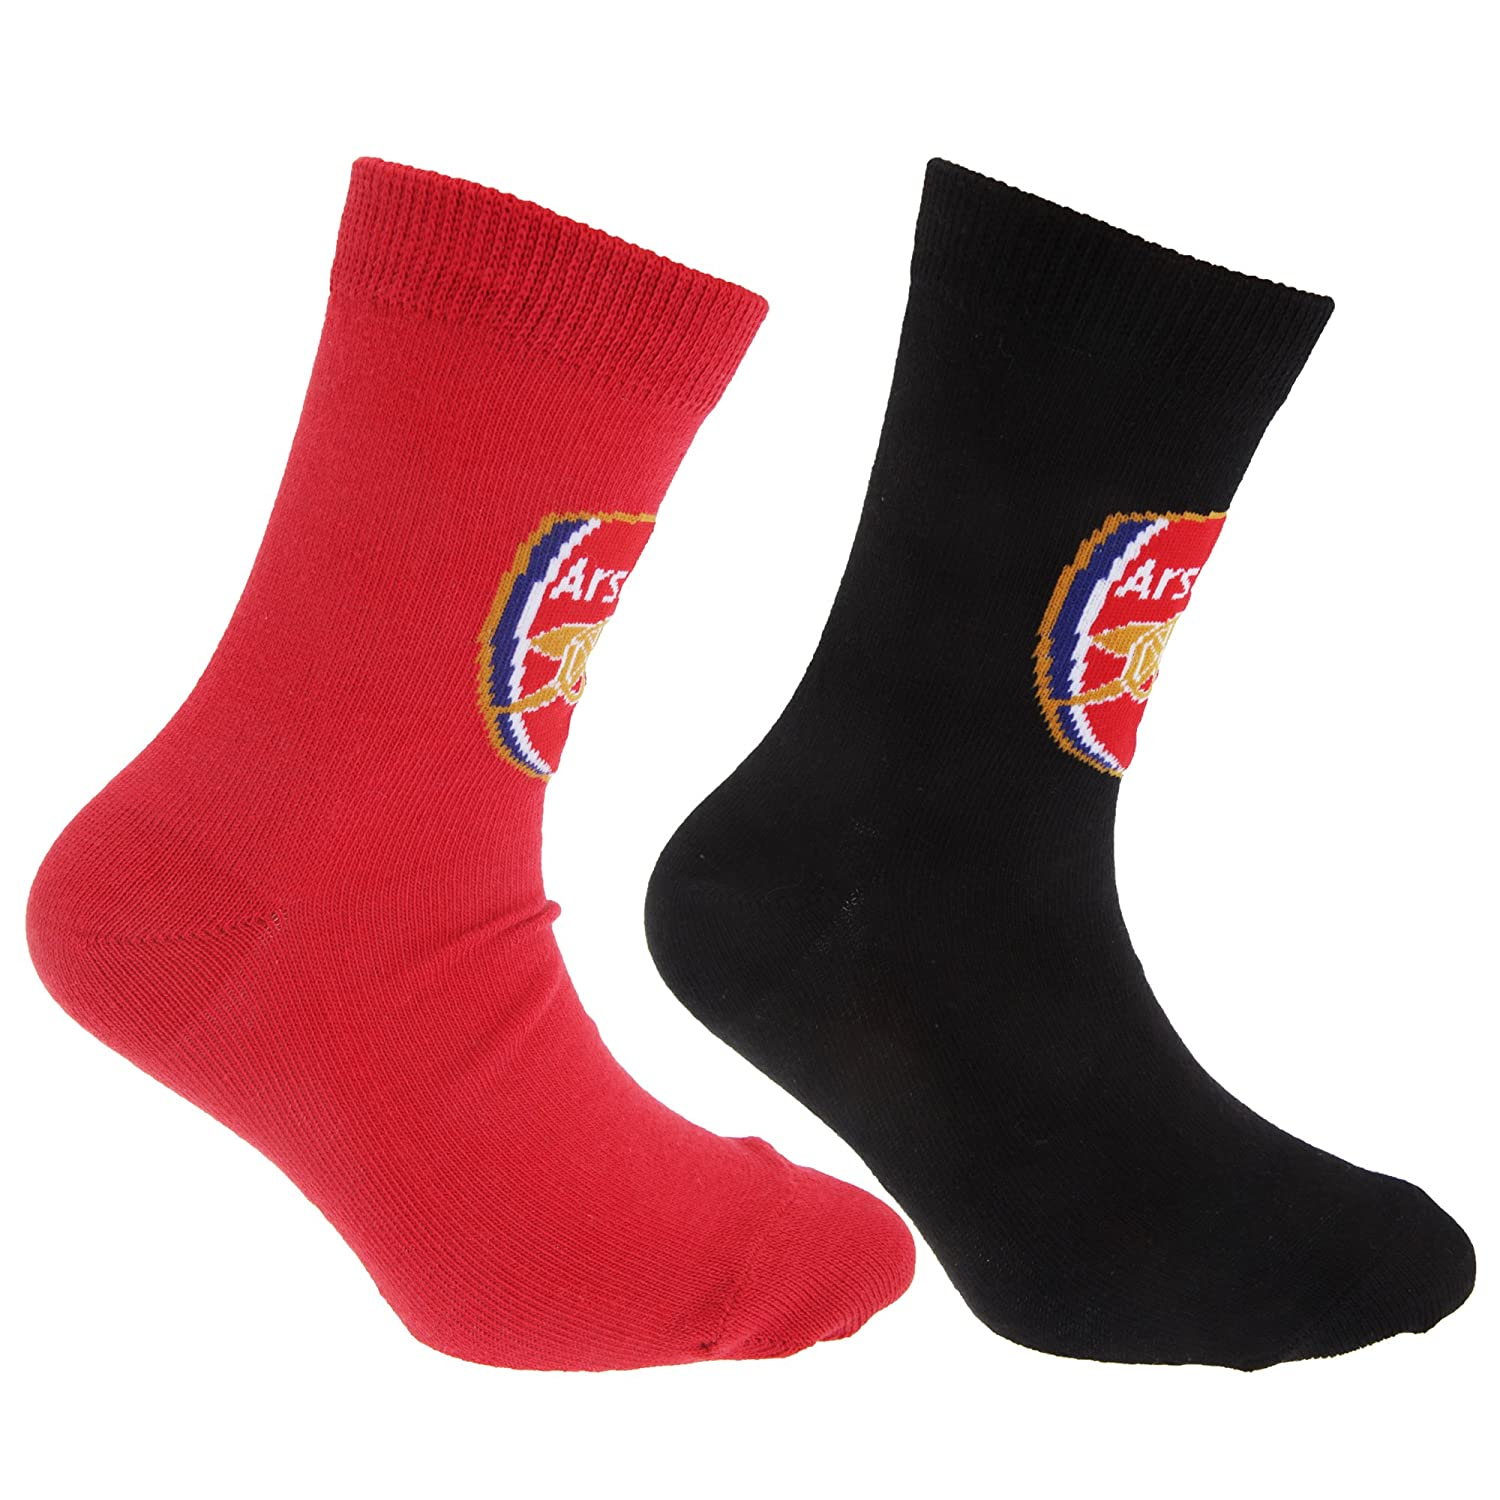 Arsenal FC Childrens Boys Official Football Crest Socks (Pack Of 2)